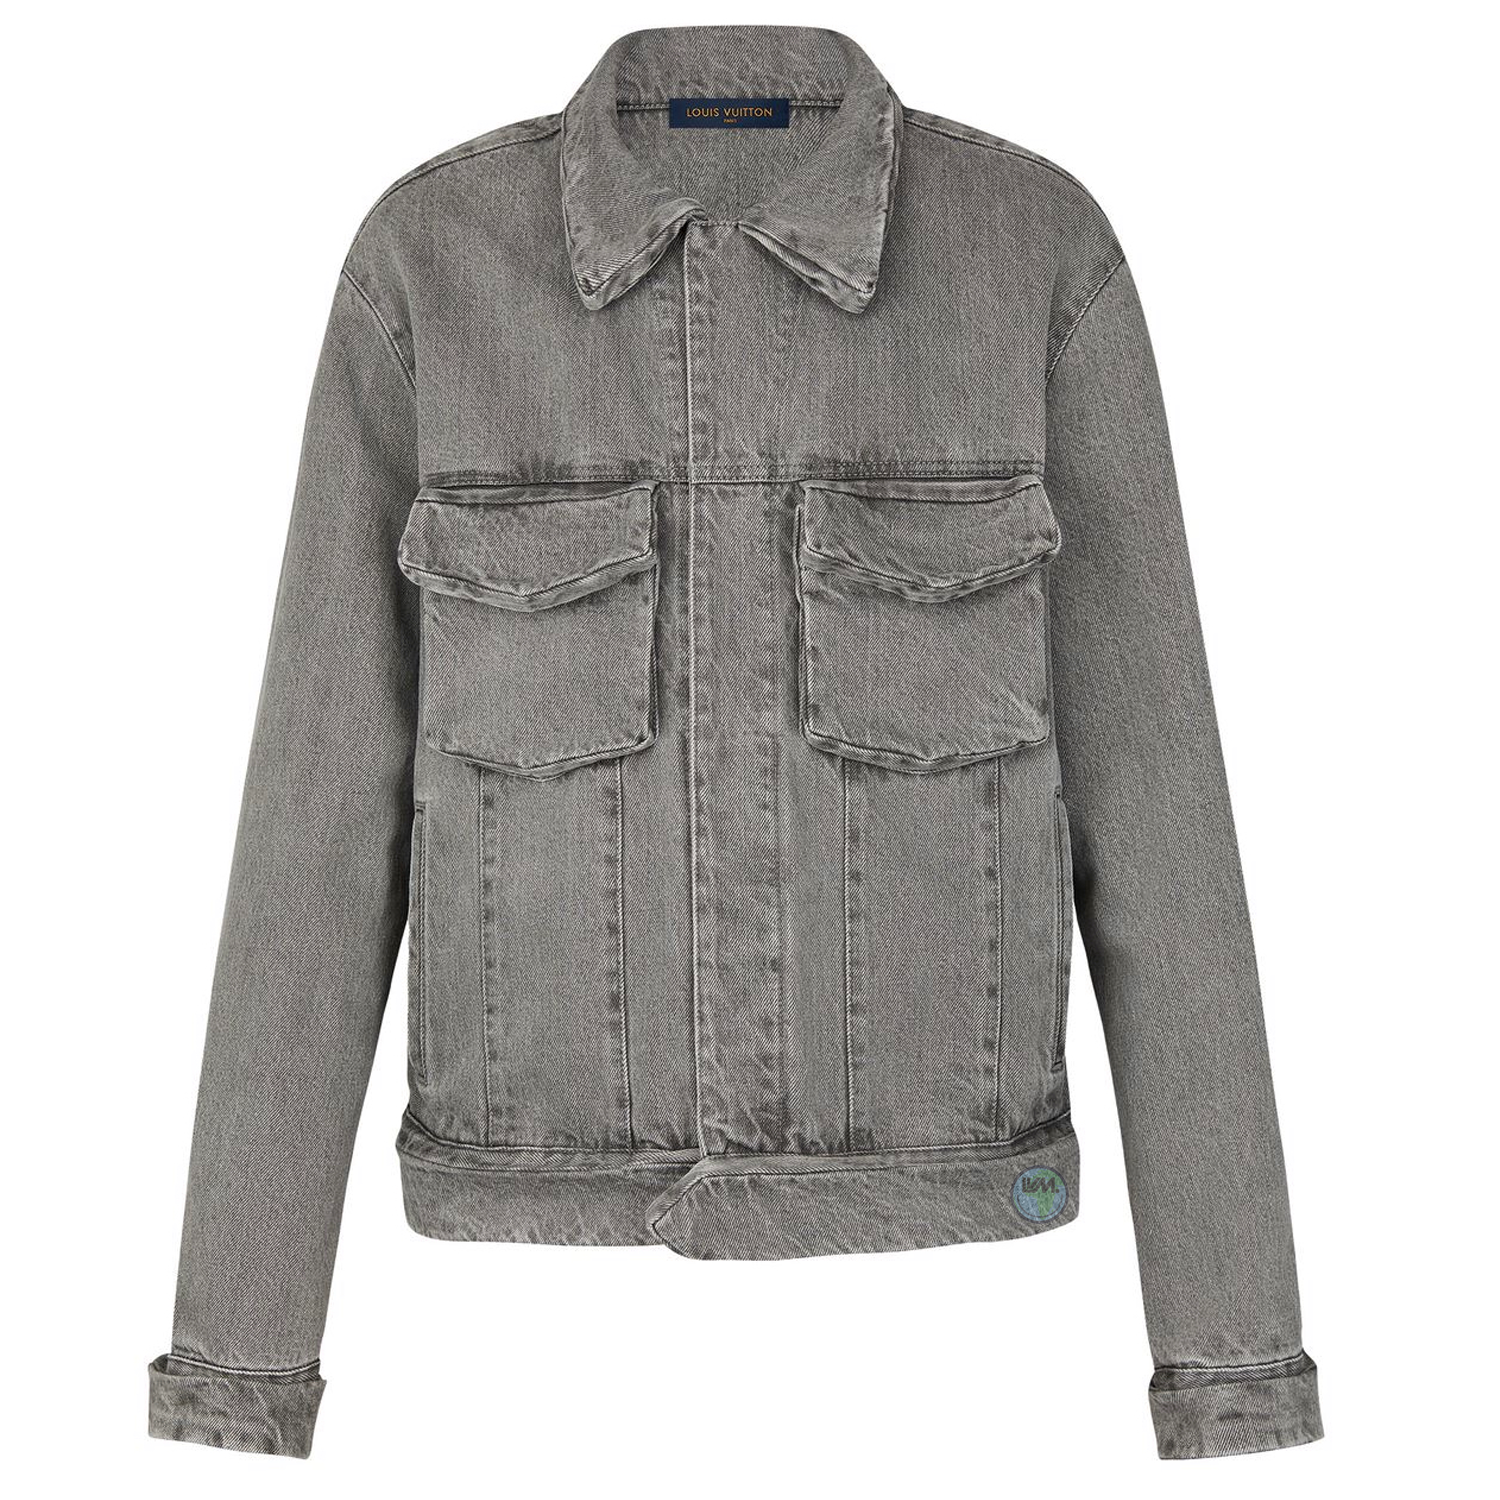 3DS DETAILS DENIM JACKET - €1500 $20001A5CGJGRIS